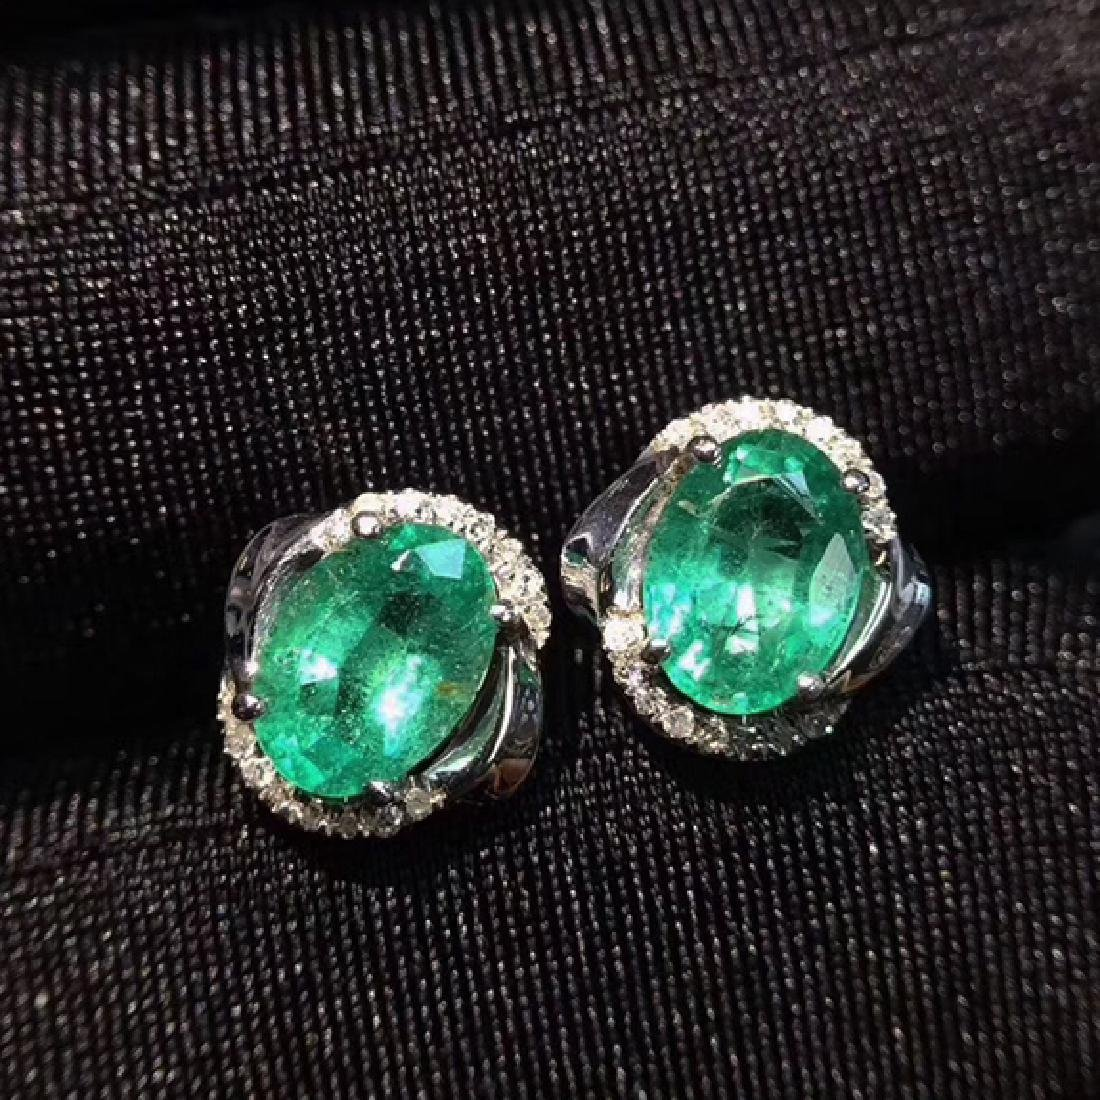 PAIR OF EMERALD EARRING WITH 18K GOLD